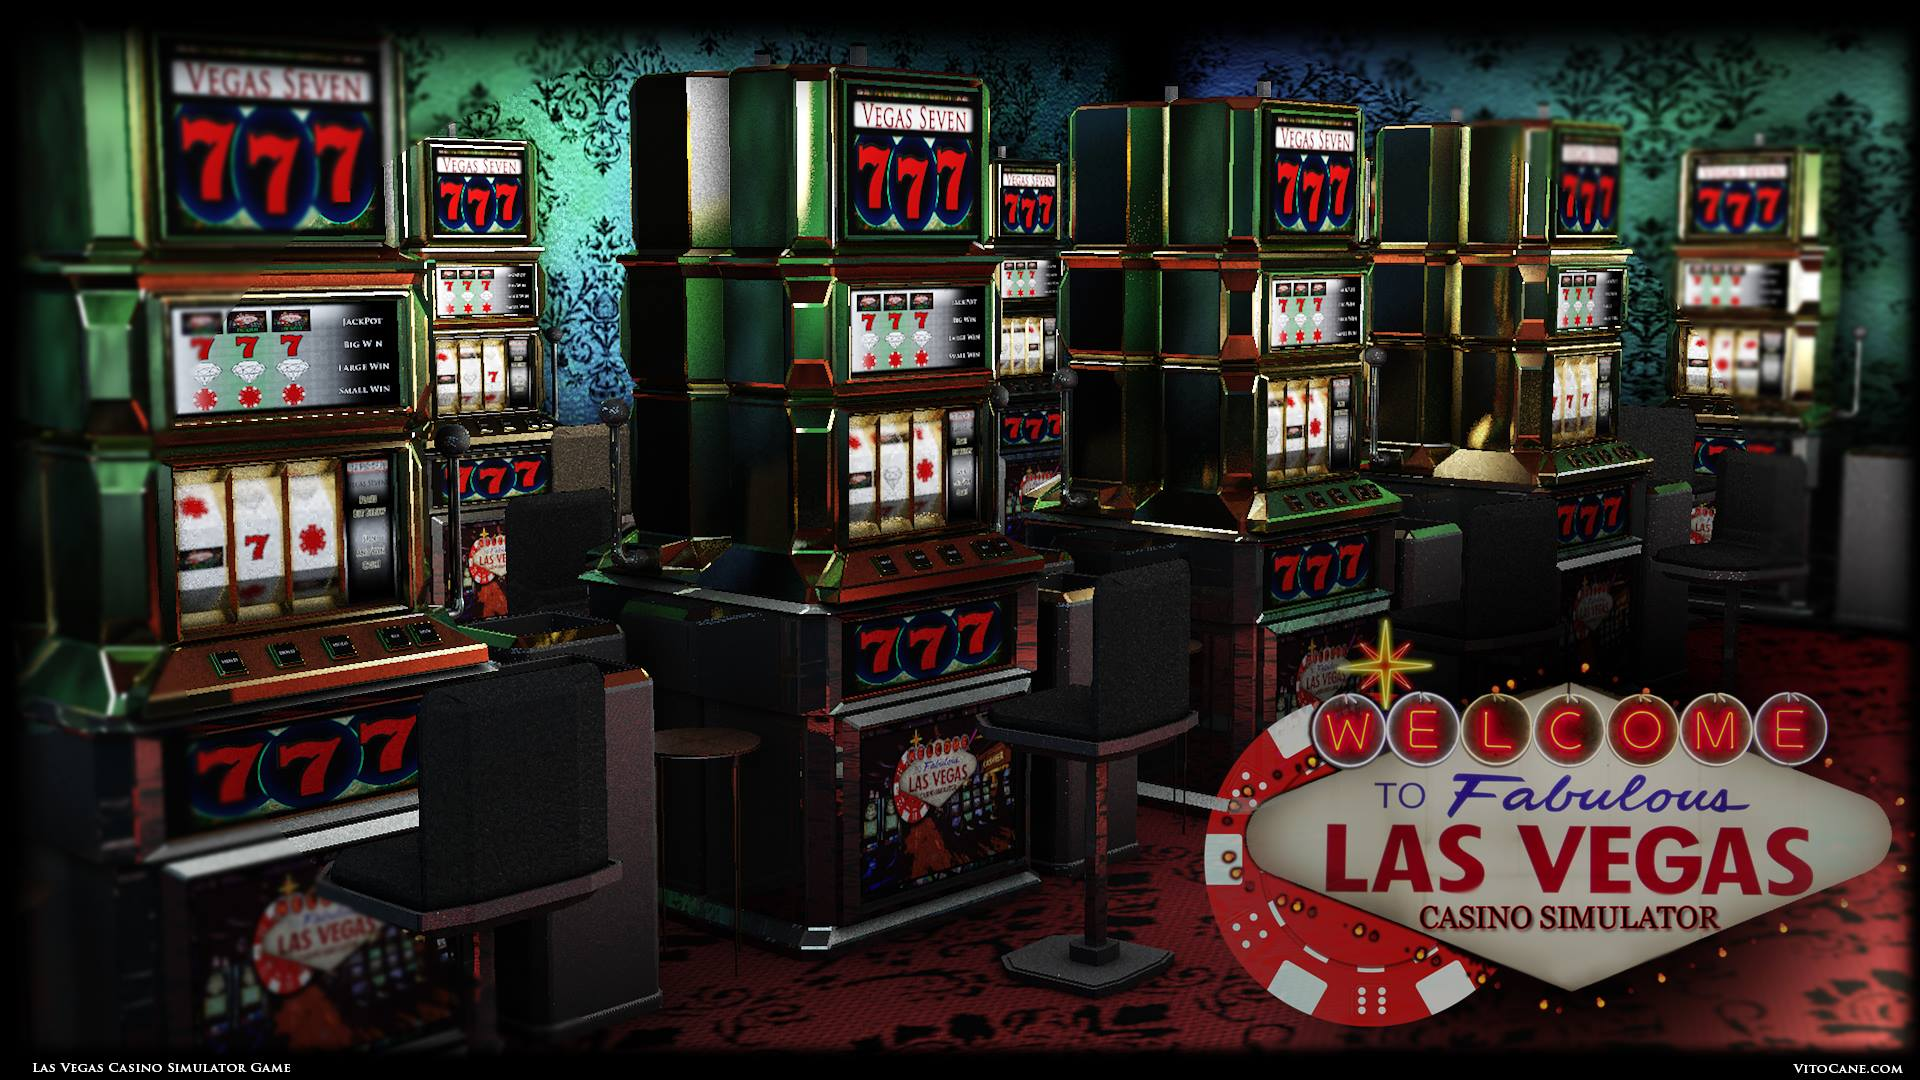 CASINO SIMULATOR